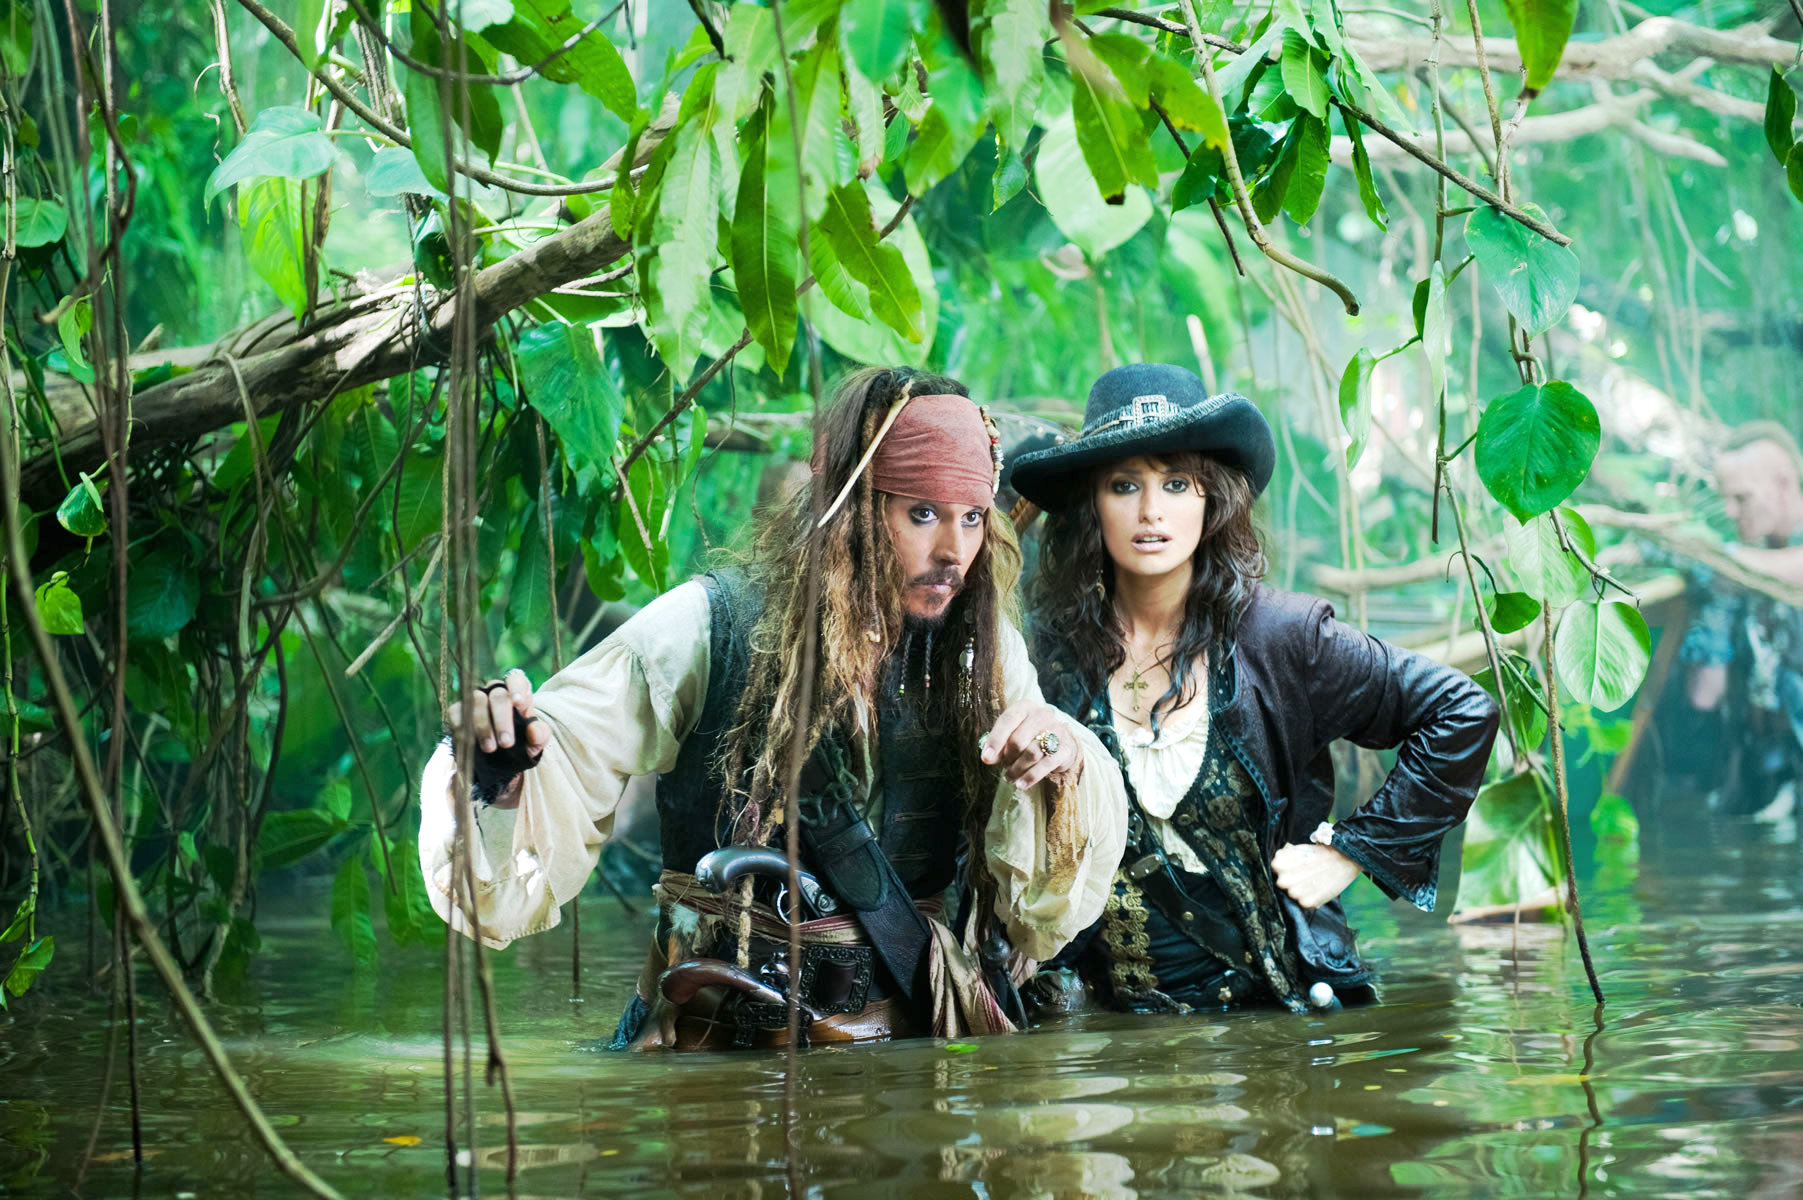 Johnny Depp stars as Jack Sparrow and Penelope Cruz stars as Angelica in Walt Disney Pictures' Pirates of the Caribbean: On Stranger Tides (2011)